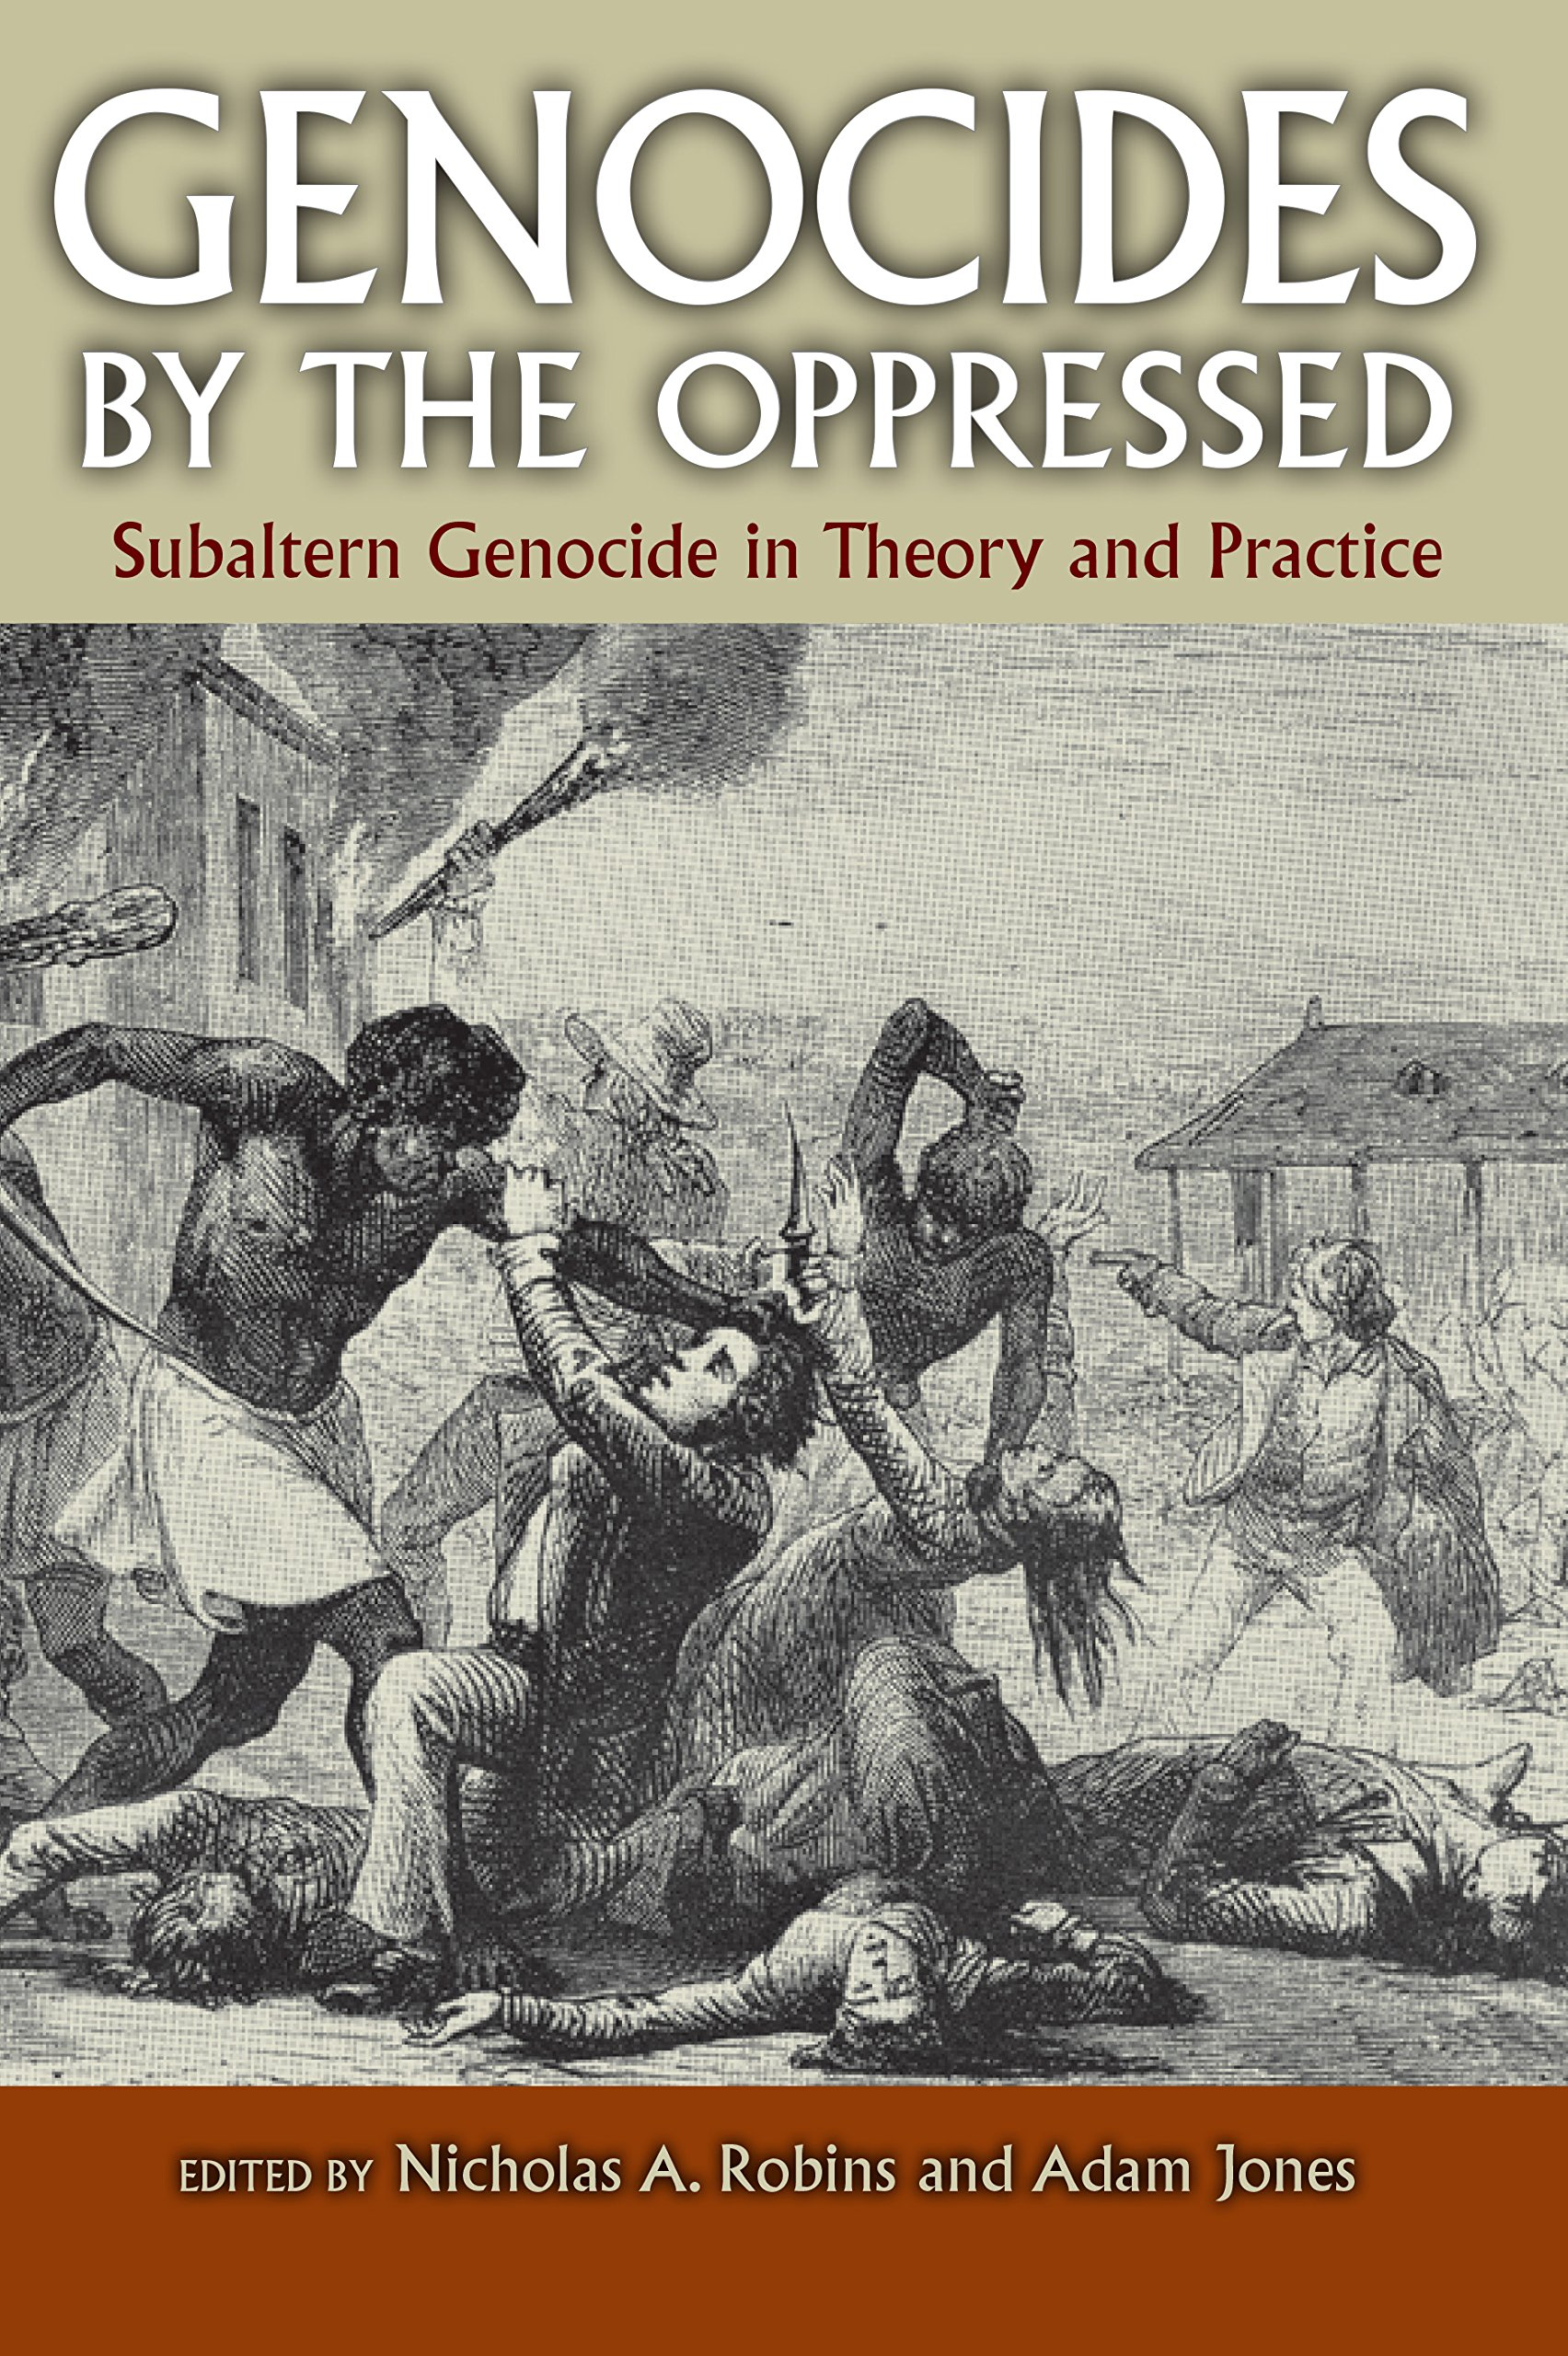 Genocides by the Oppressed: Subaltern Genocide in Theory and Practice pdf